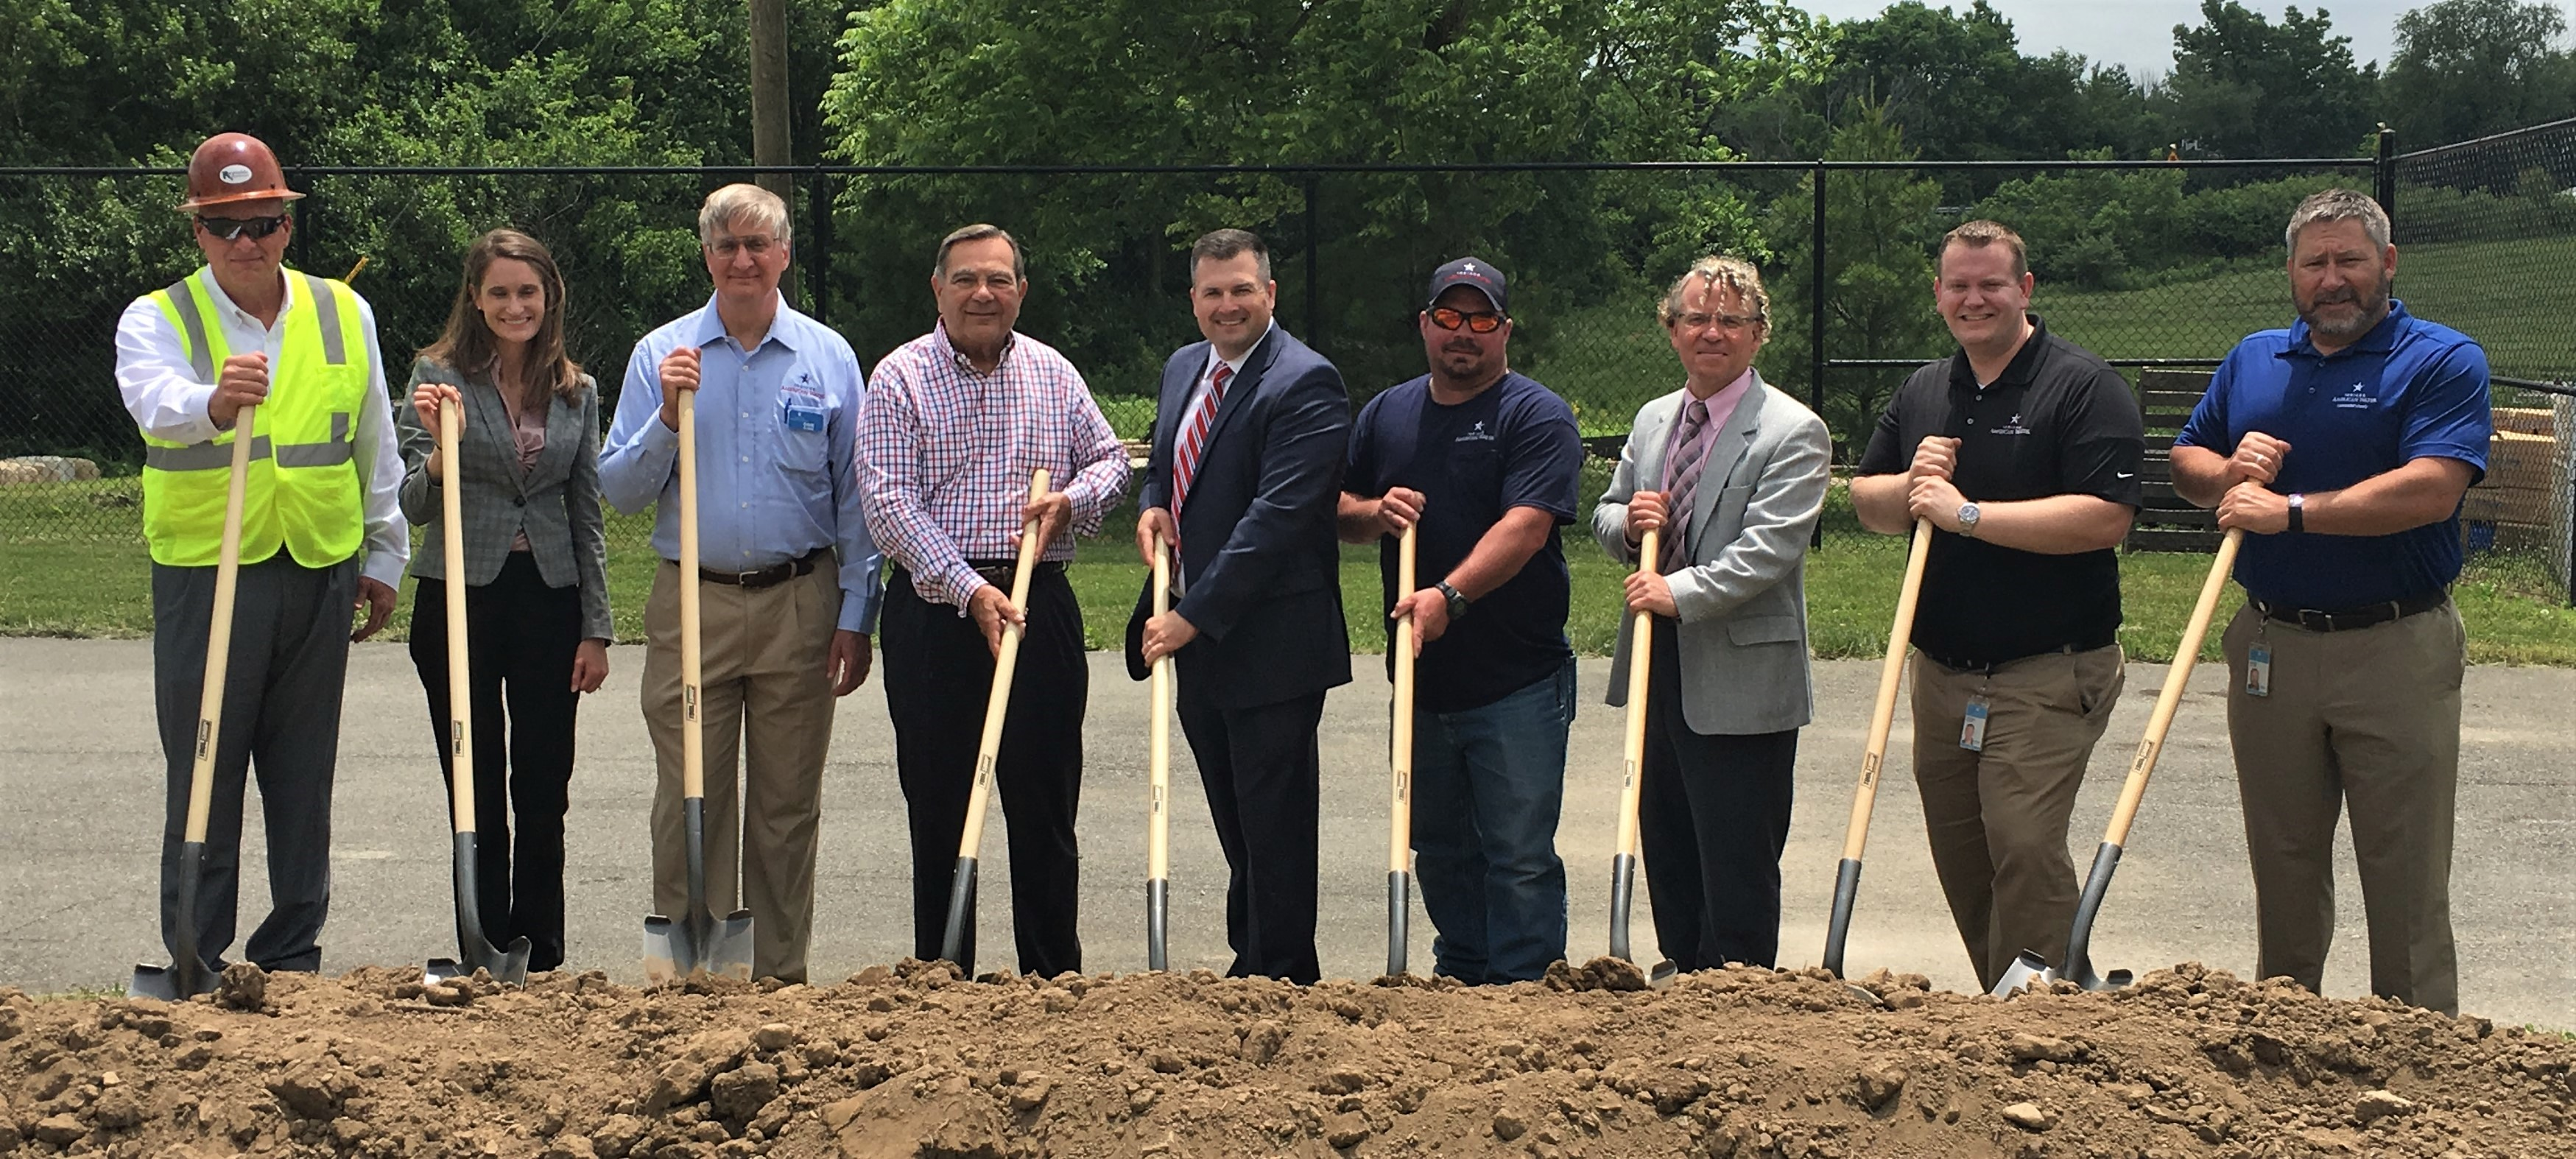 Indiana American Water Breaks Ground on New Water Treatment Facilities in Noblesville